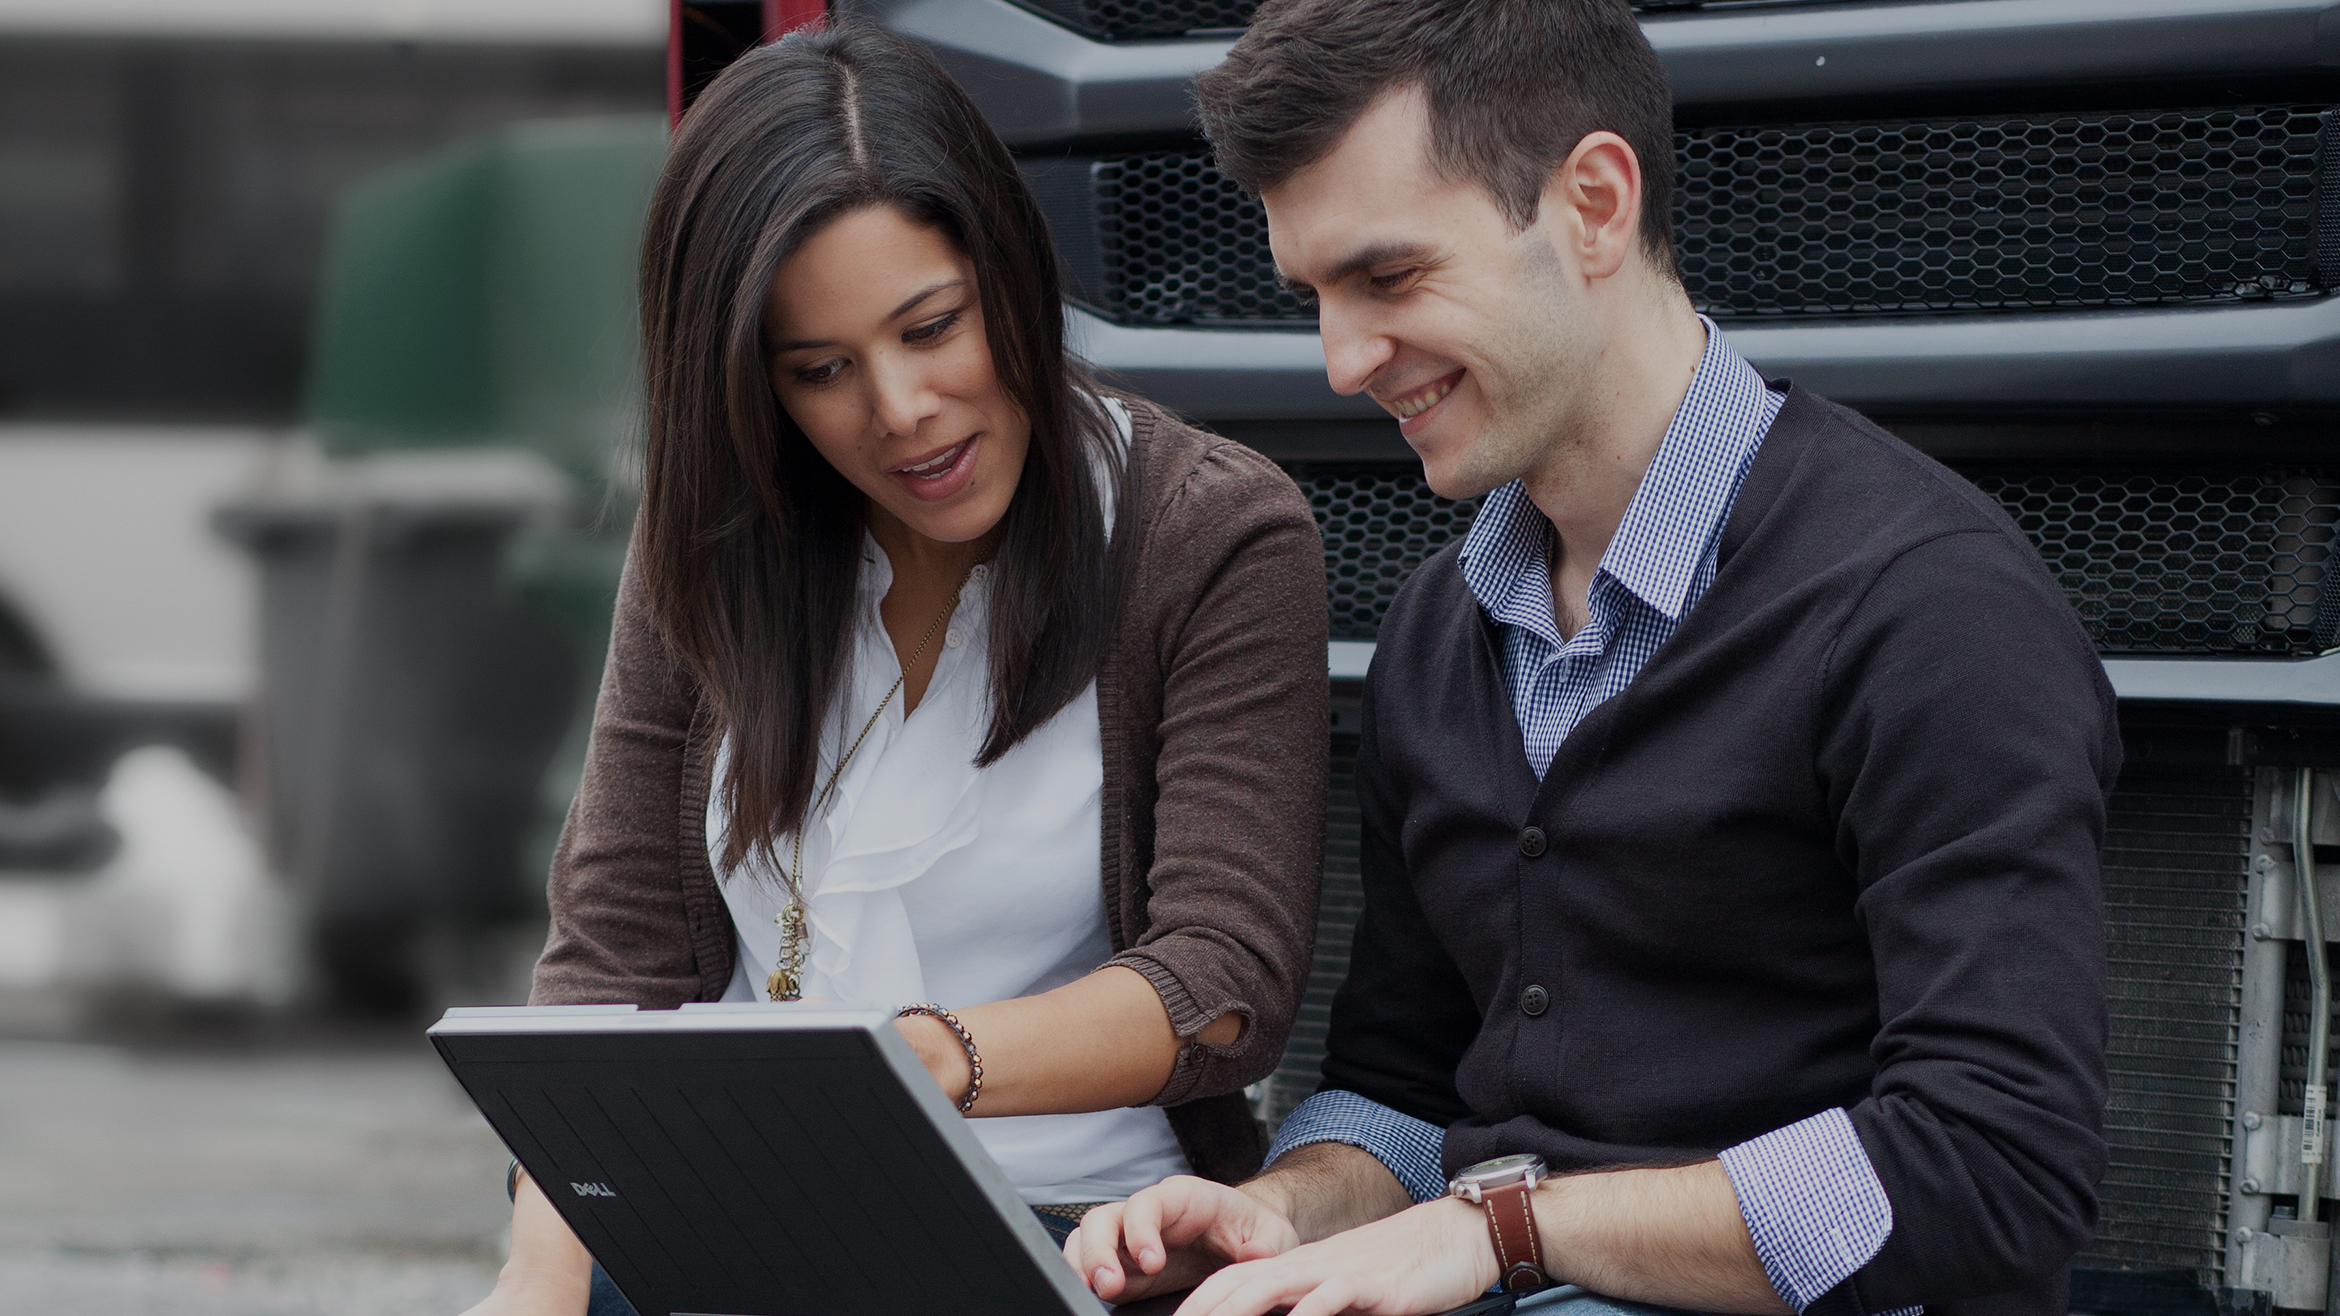 Two employees leaning against a truck looking at a laptop